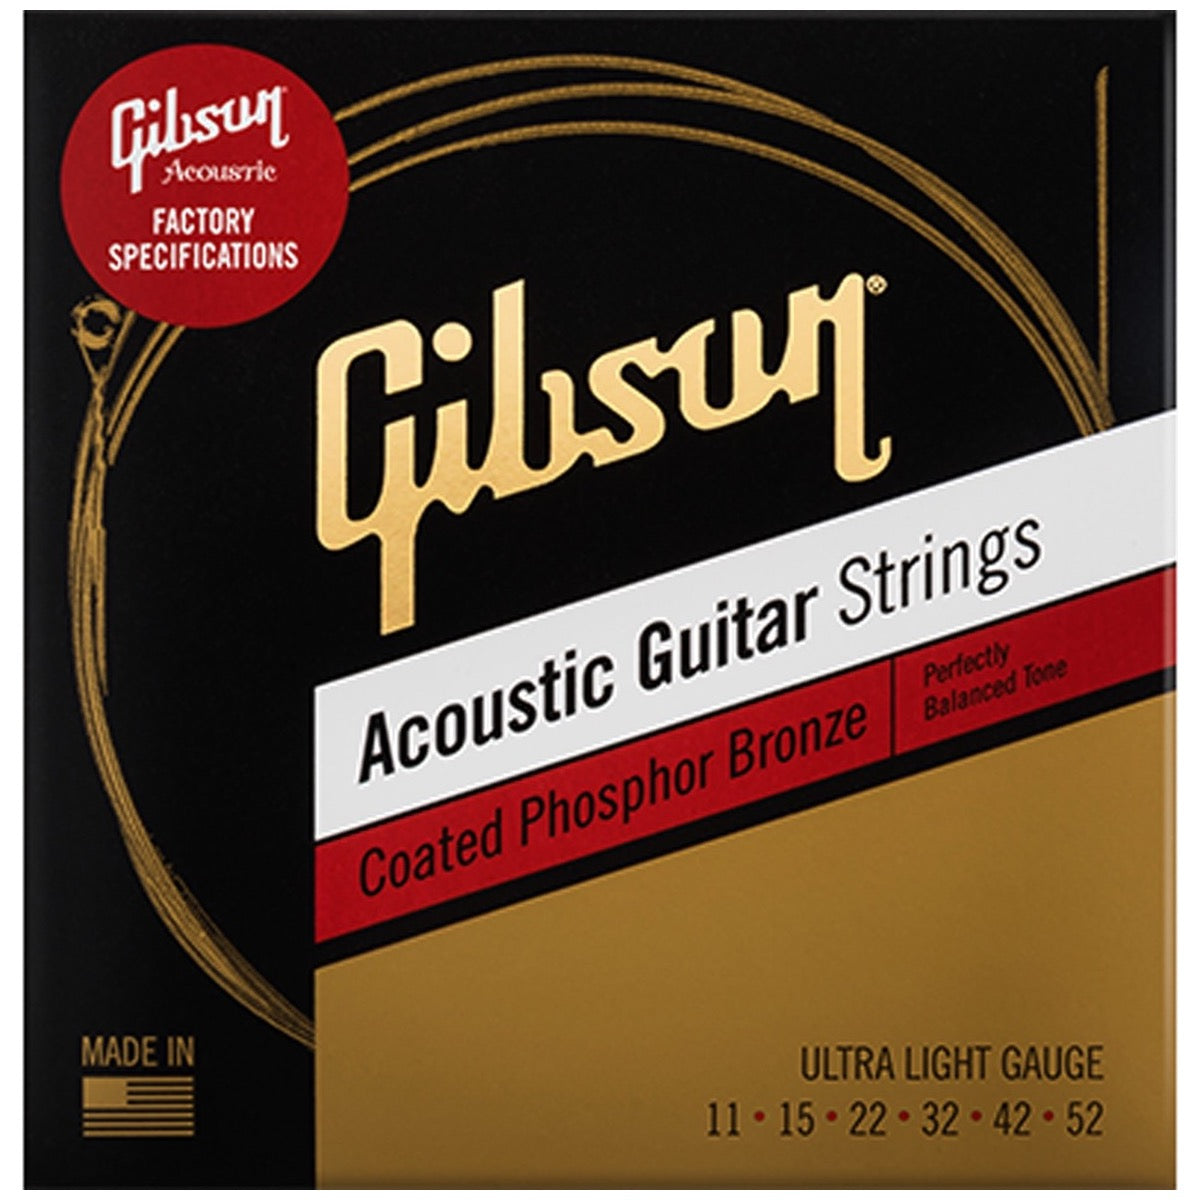 Gibson Coated Phosphor/Bronze Acoustic Guitar Strings, Ultra Light